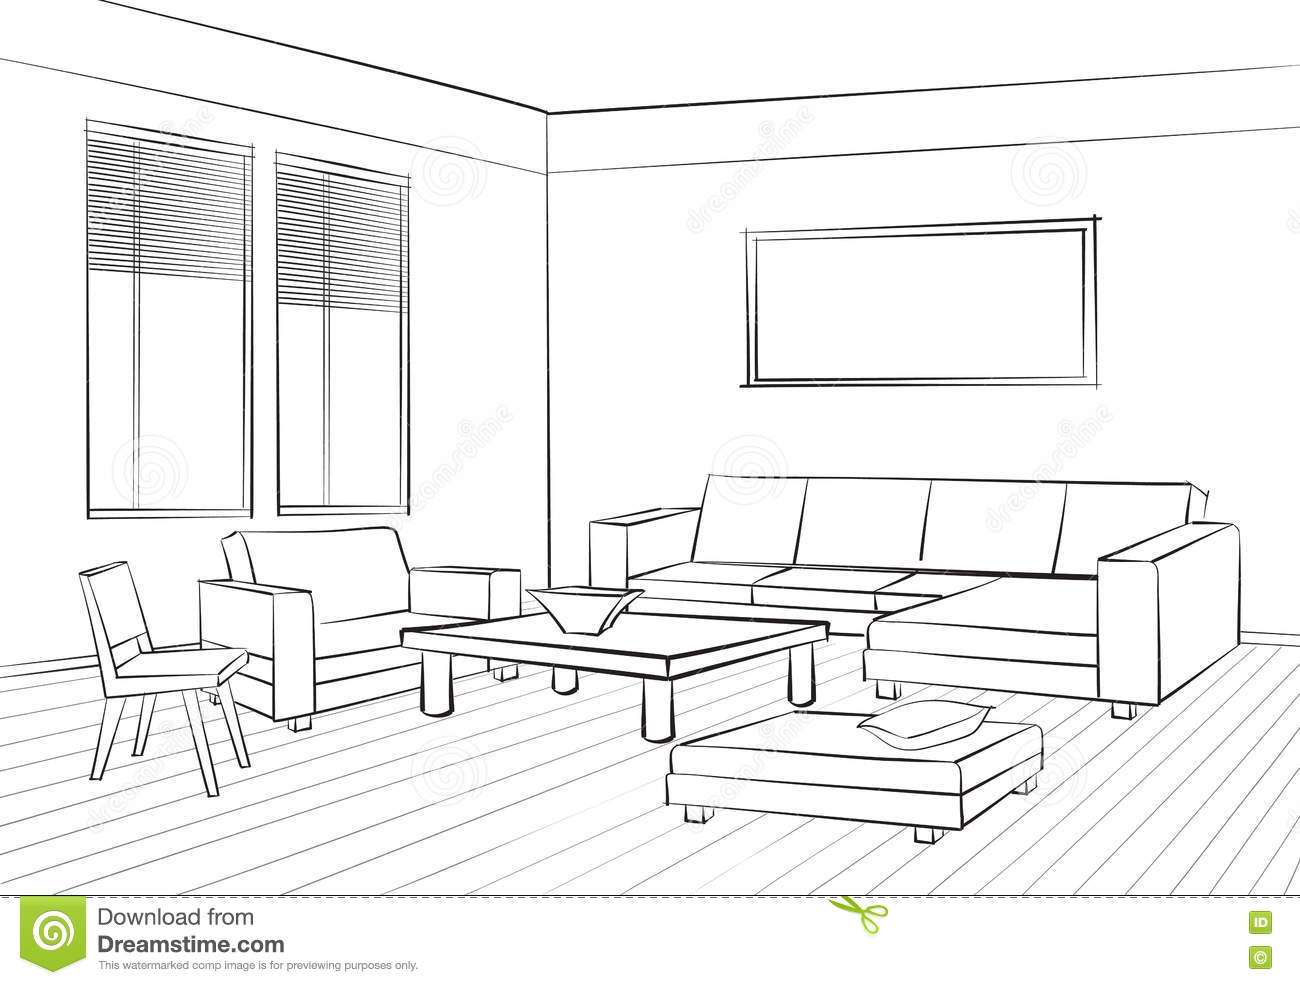 armchair conc design drawing furniture home illustration interior living room  sketch ...